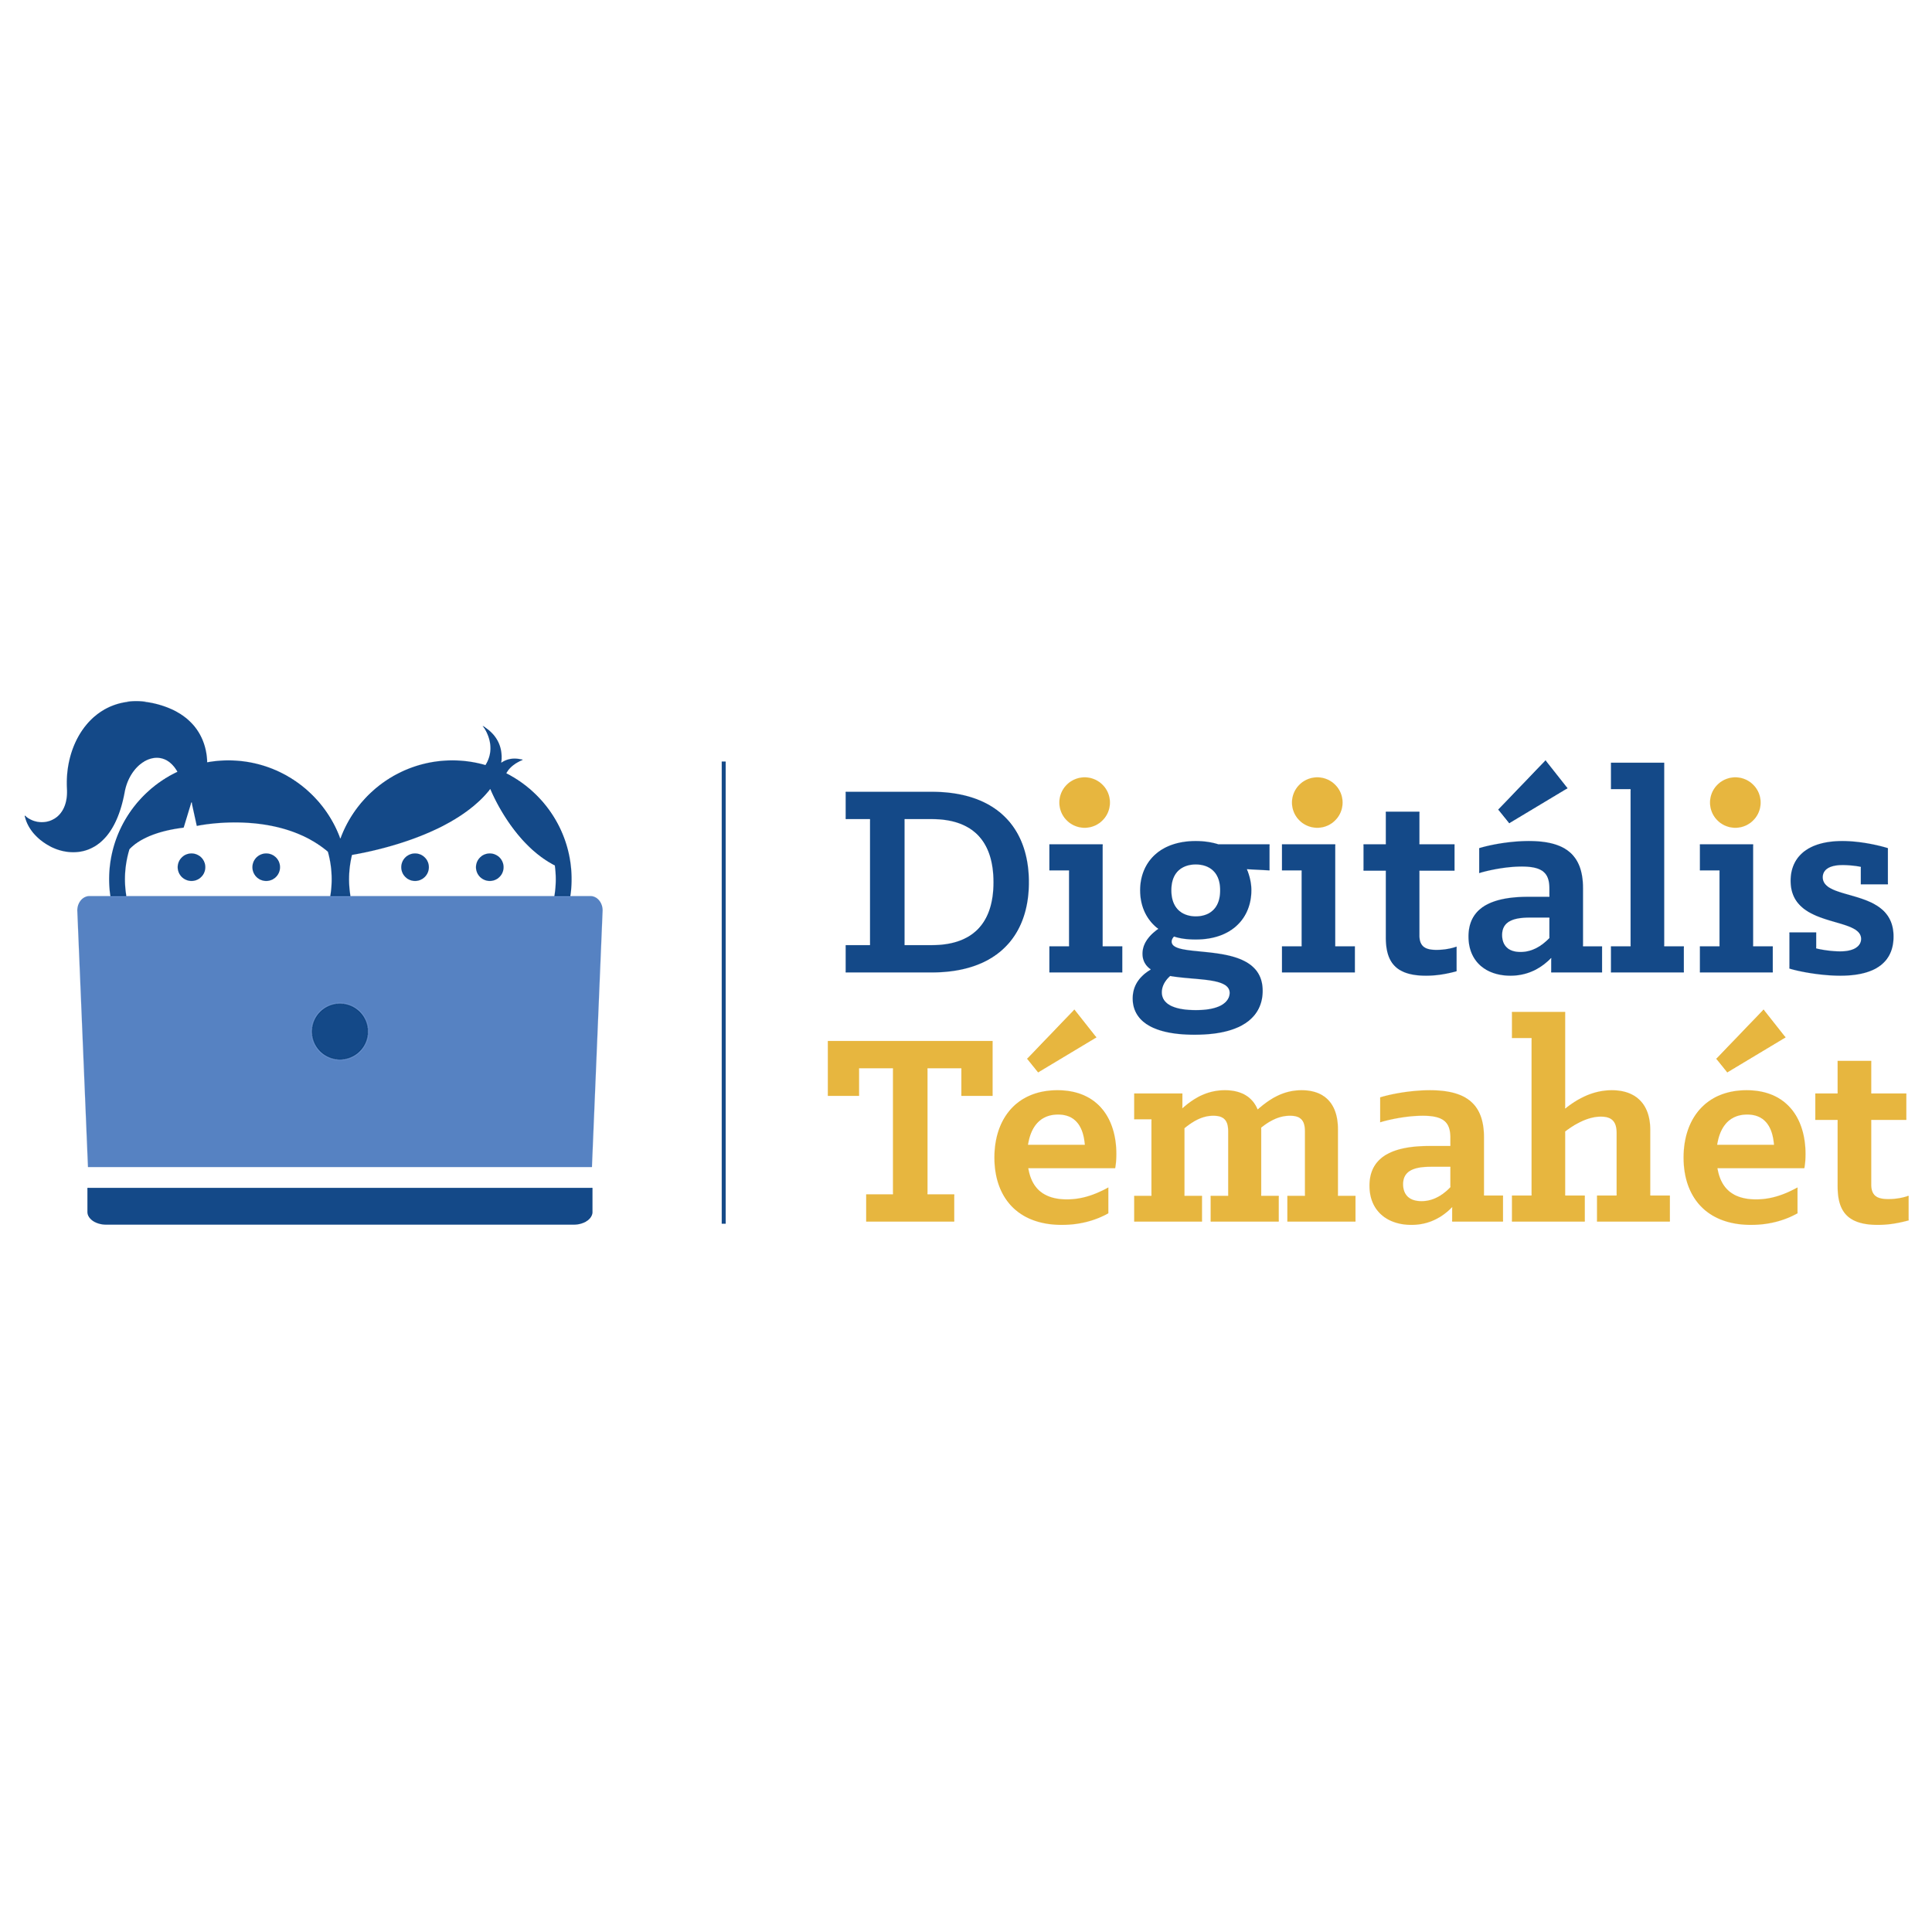 digitalis_temahet_color_LOGO_type_2.0